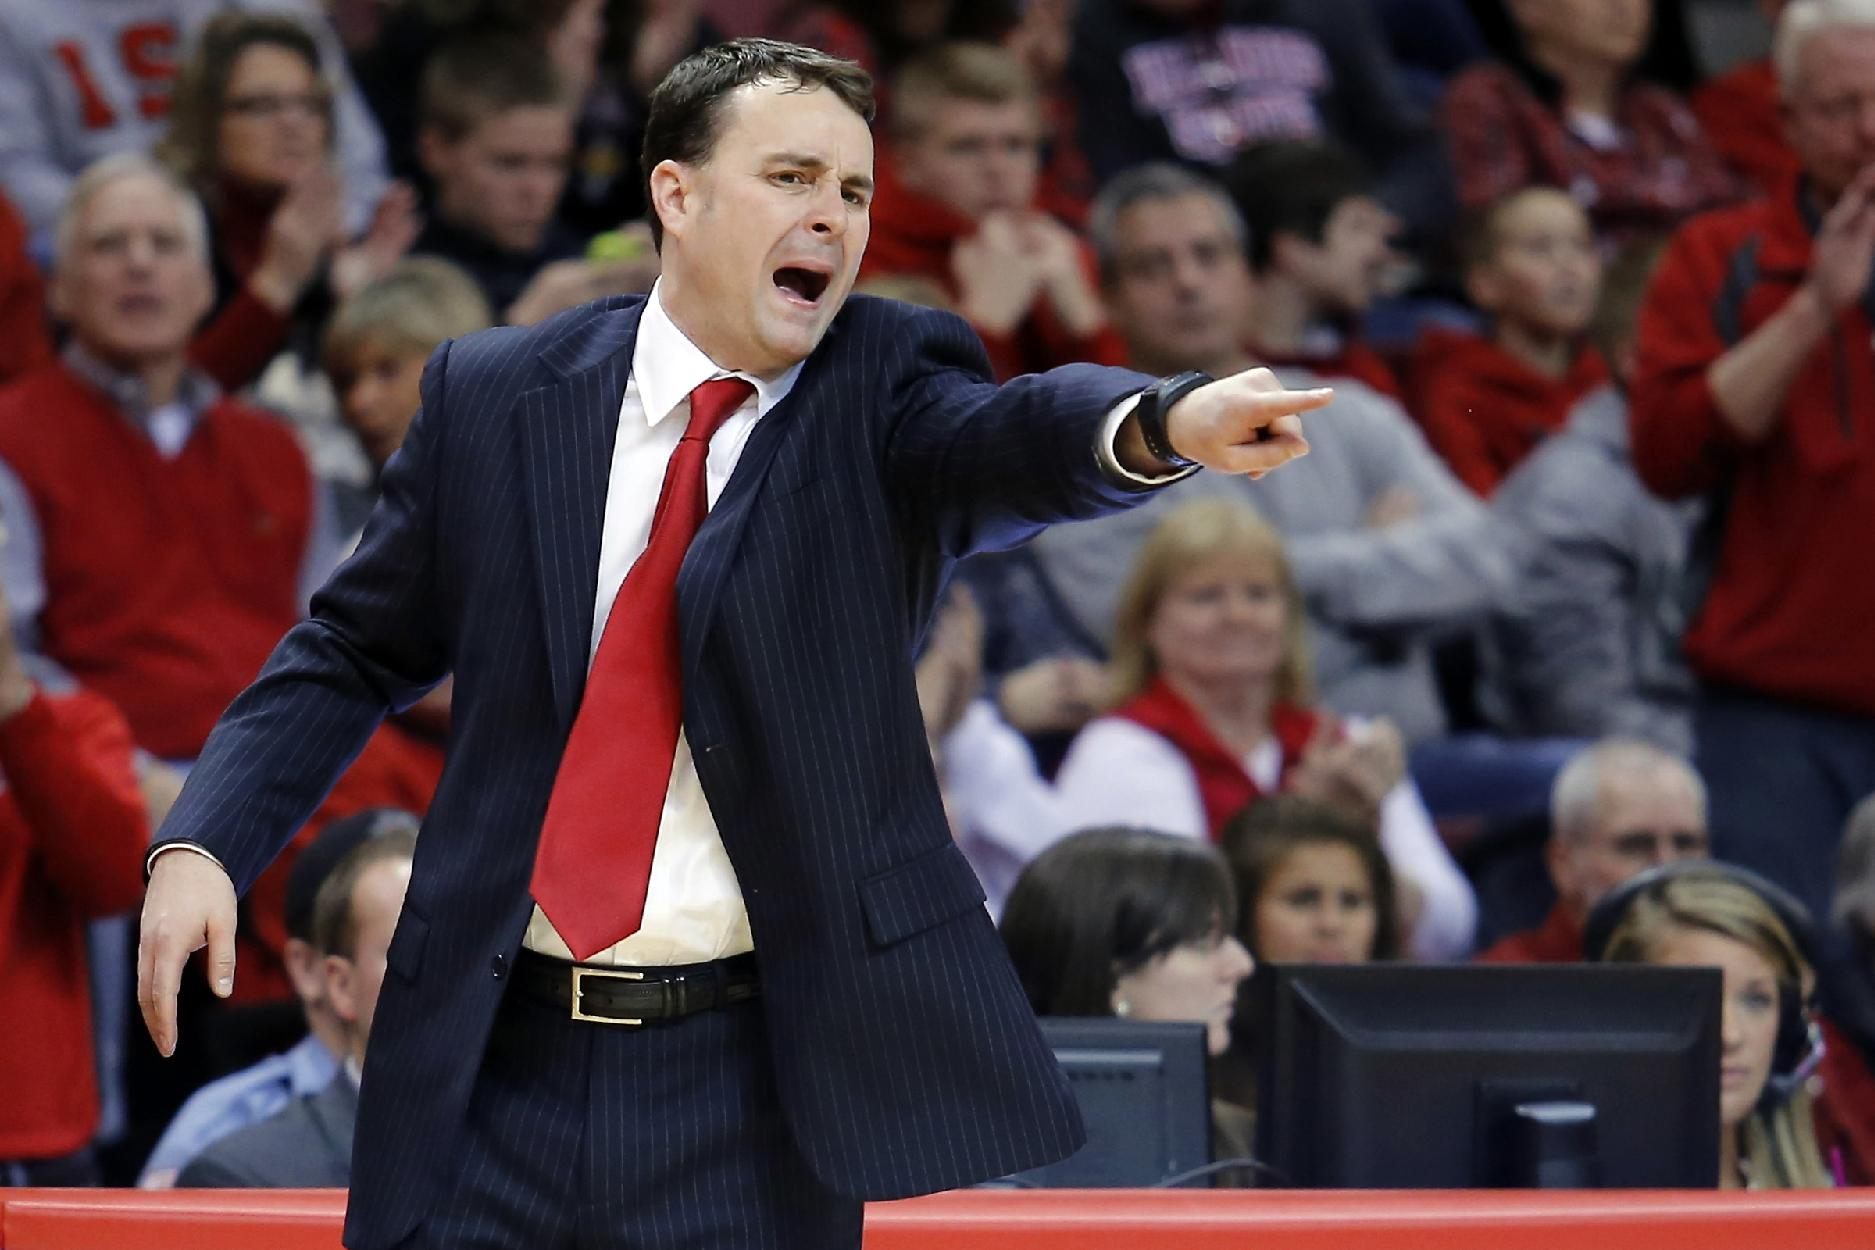 In this Dec. 7, 2013, file photo, Dayton coach Archie Miller calls out from the bench during an NCAA college basketball game against Illinois State in Normal, Ill. John Miller's sons _ Sean, who coaches No. 1 West seed Arizona; and younger brother Archie, who coaches No. 11 South seed Dayton _ could meet in the Final Four